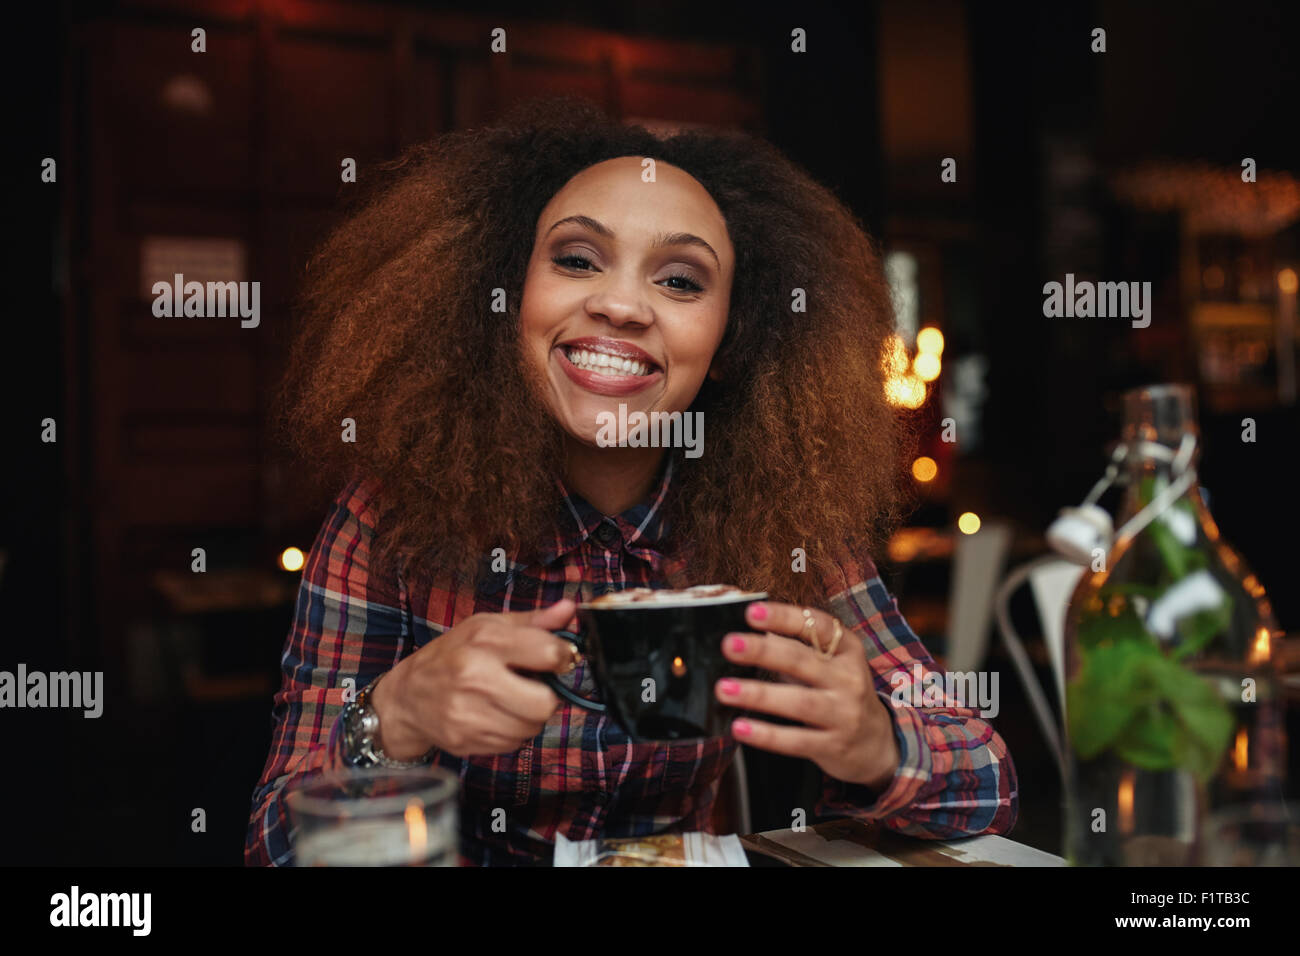 Portrait of young woman drinking coffee. African woman sitting at cafe holding a cup of coffee, looking at camera - Stock Image